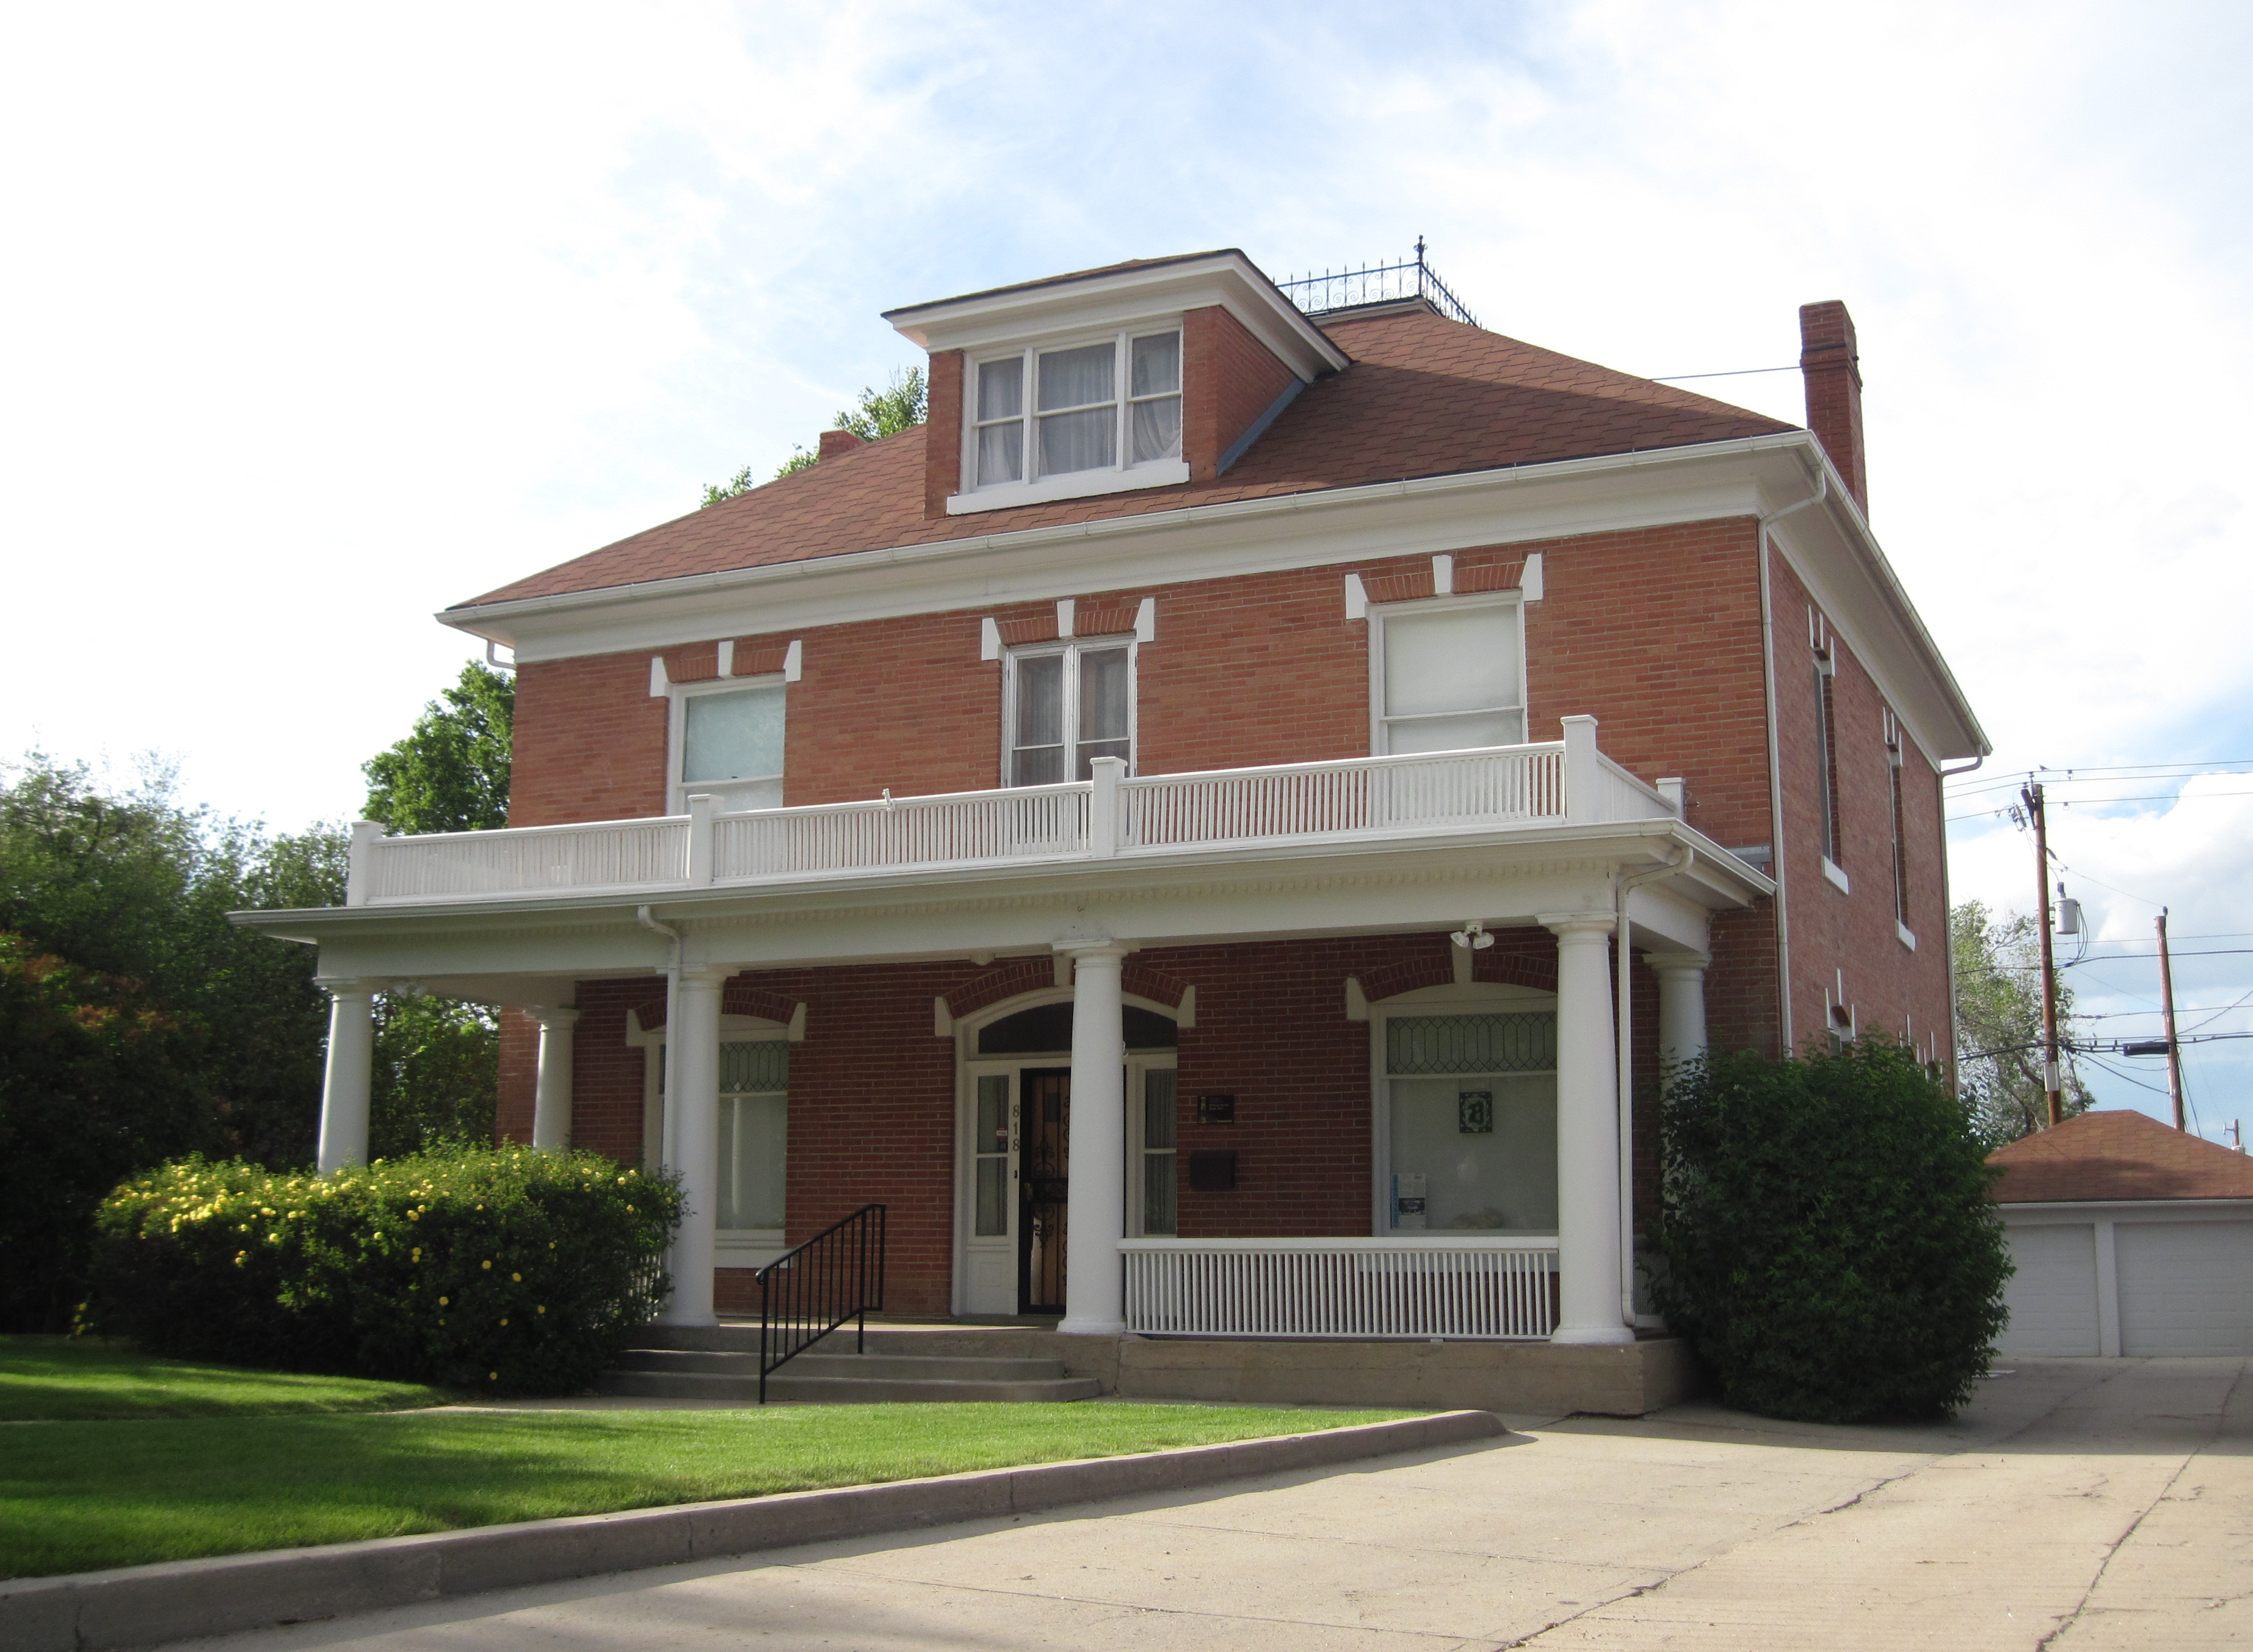 The Bishop House was built in 1907.